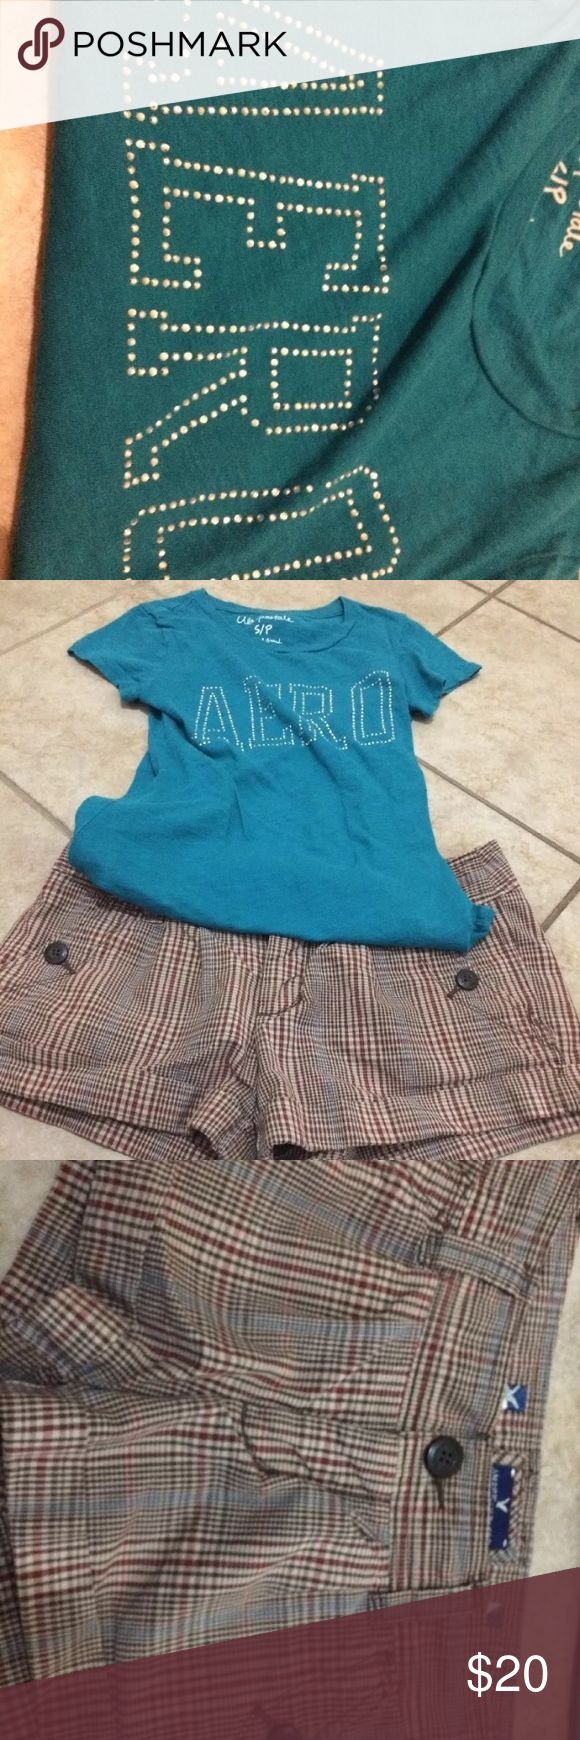 American Eagle Shorts 0 Aeropostale Small Tshirt American Eagle Shorts 0 Aeropostale Small Tshirt  Thanks for looking American Eagle Outfitters Shorts